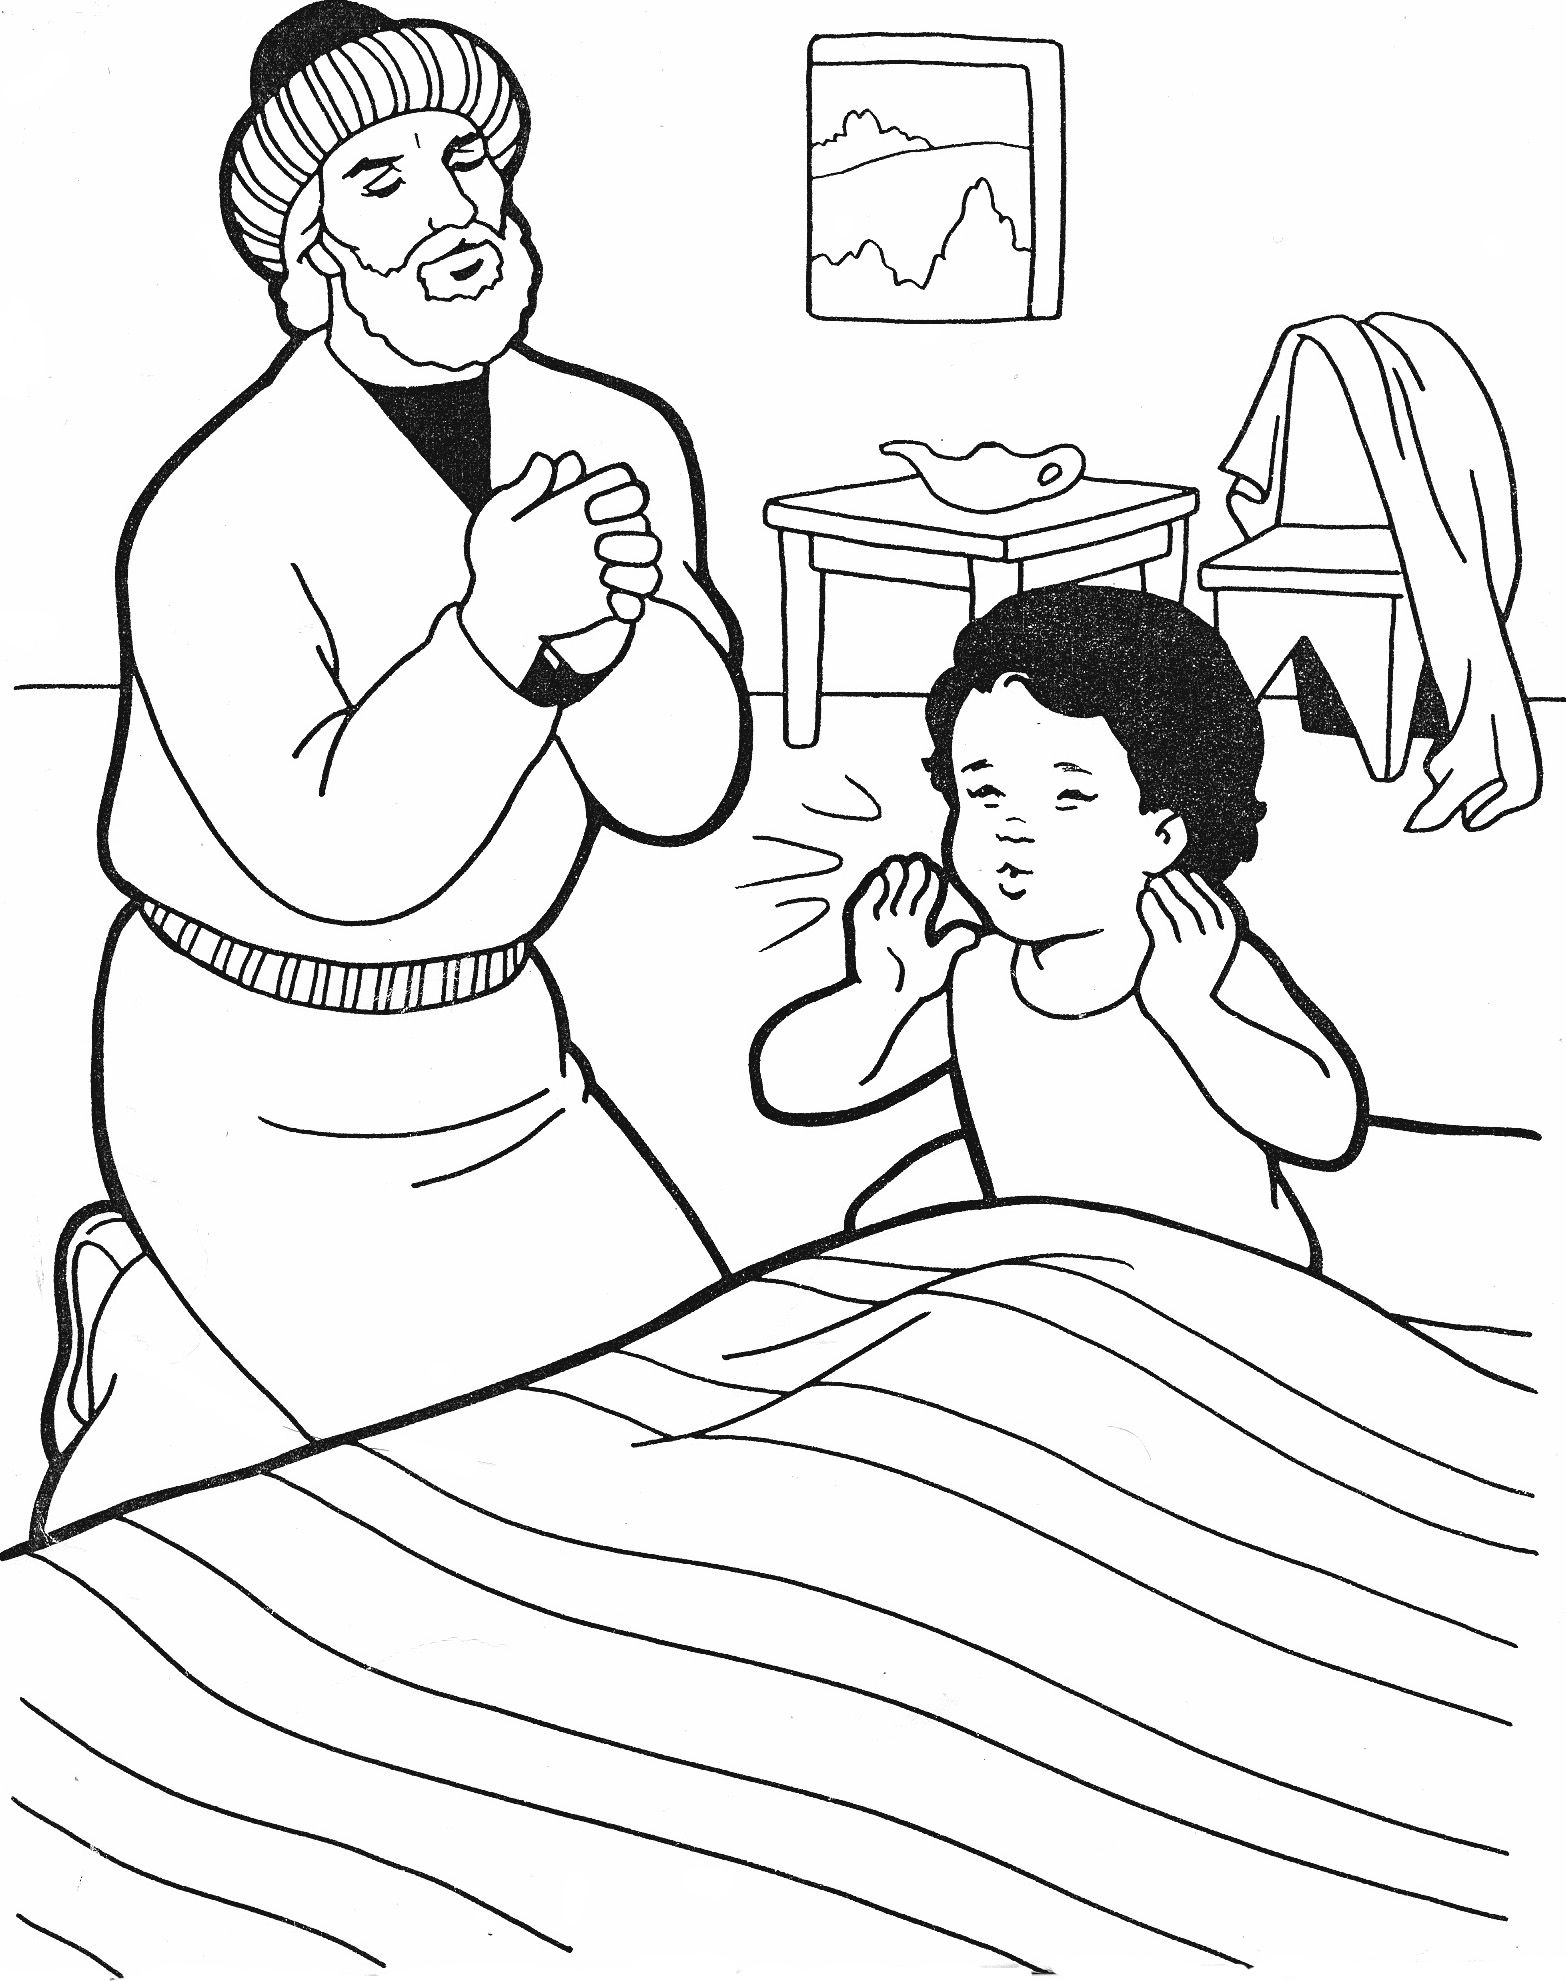 Coloring Pages Elisha Coloring Page this website has a lot of coloring pages worksheets and more on lesson 10 elisha helps the woman shunem shunnamite womans son sneezes 7 times